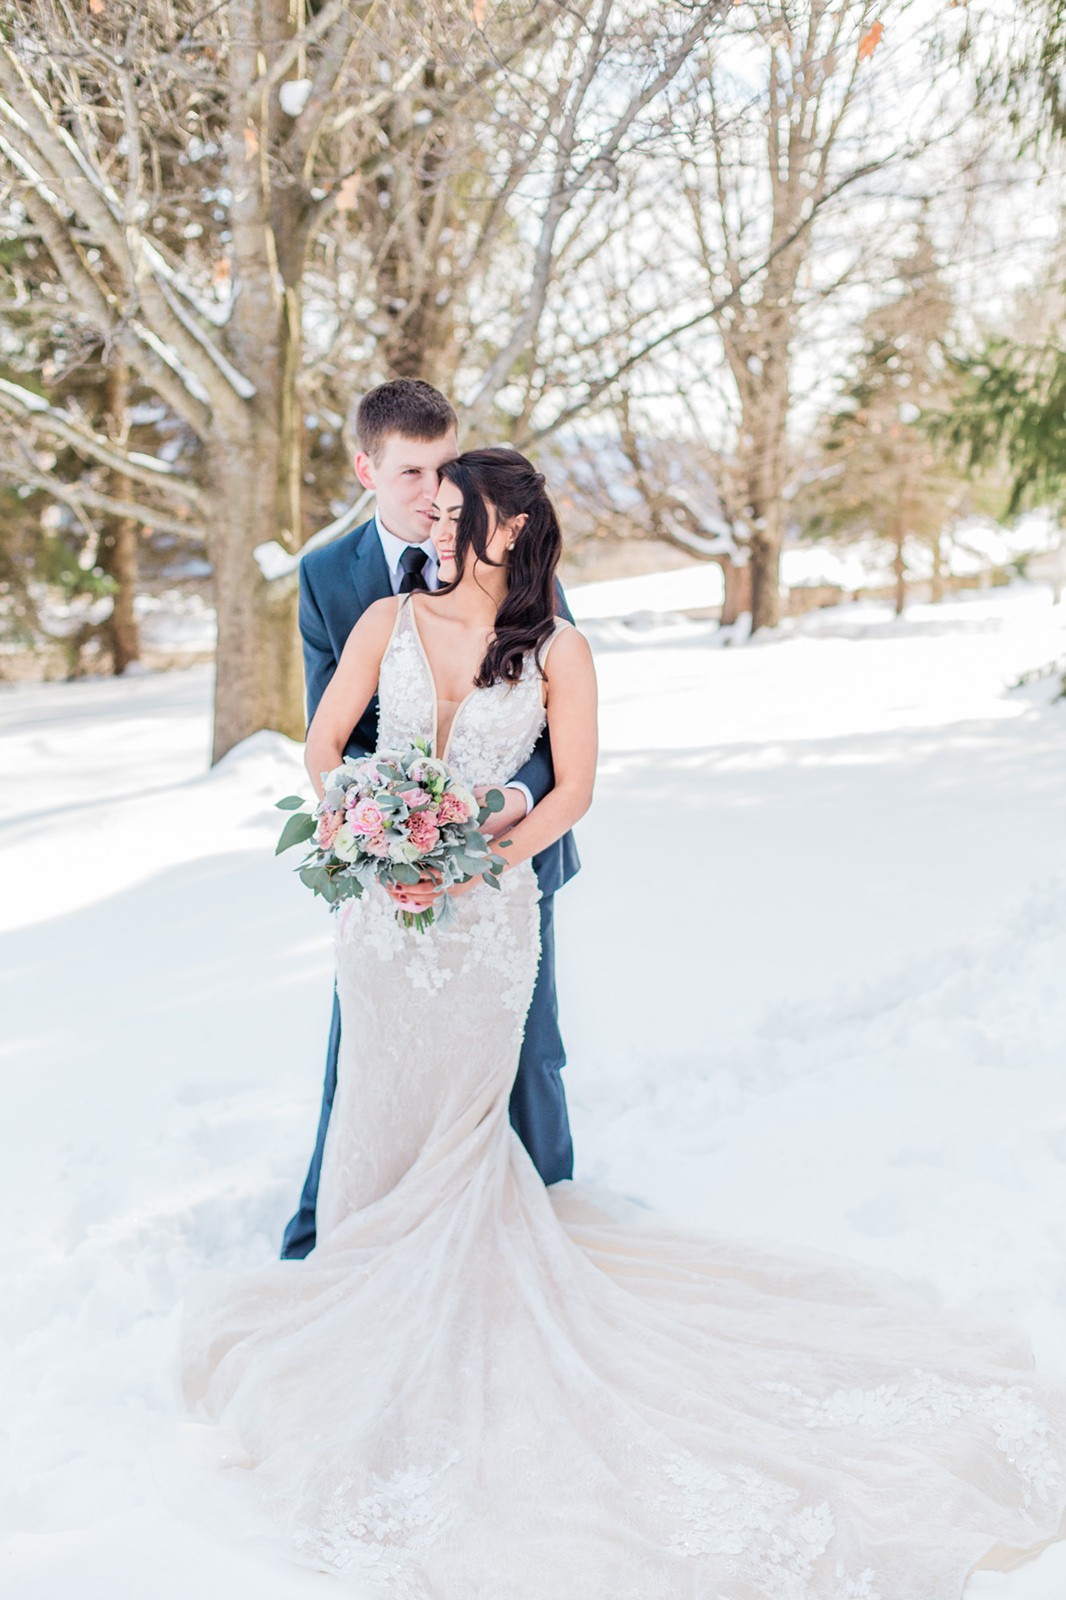 gorgeous couple photo winter outdoor wedding photoshoot